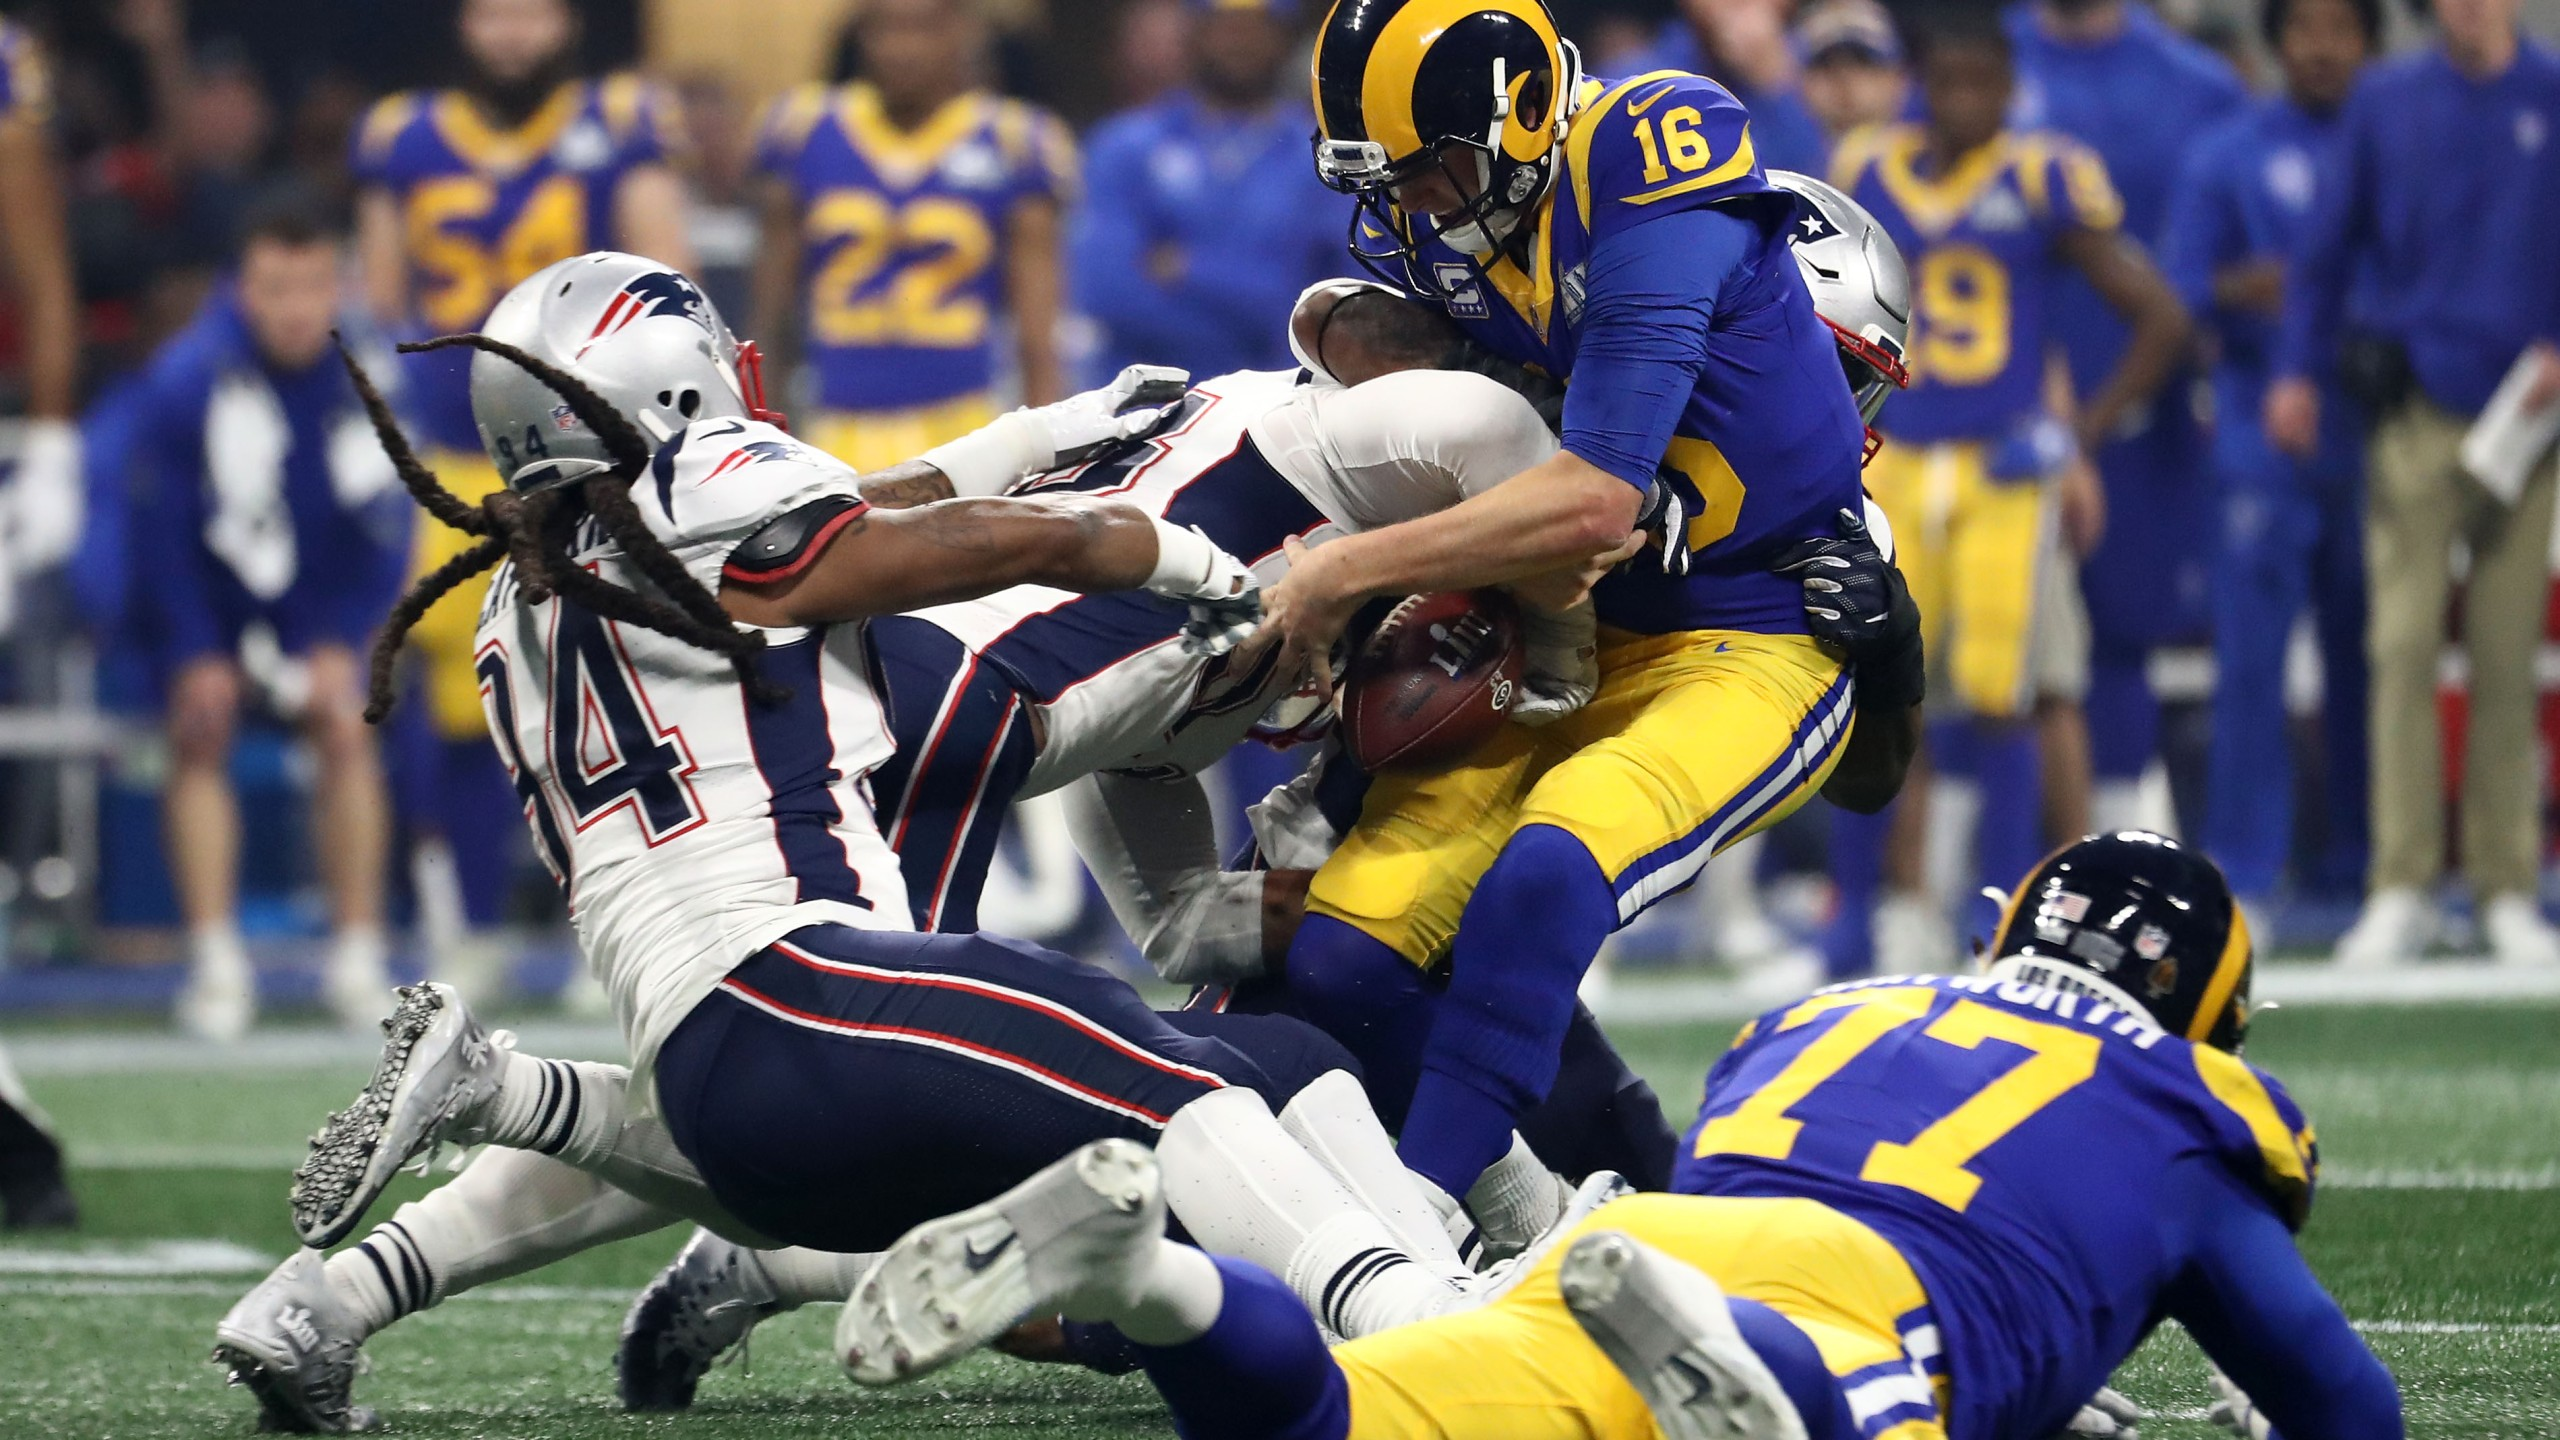 Jared Goff of the Los Angeles Rams, is sacked by Kyle Van Noy and Dont'a Hightower of the New England Patriots in the second half during Super Bowl LIII at Mercedes-Benz Stadium in Atlanta on Feb. 3, 2019. (Credit: Al Bello / Getty Images)